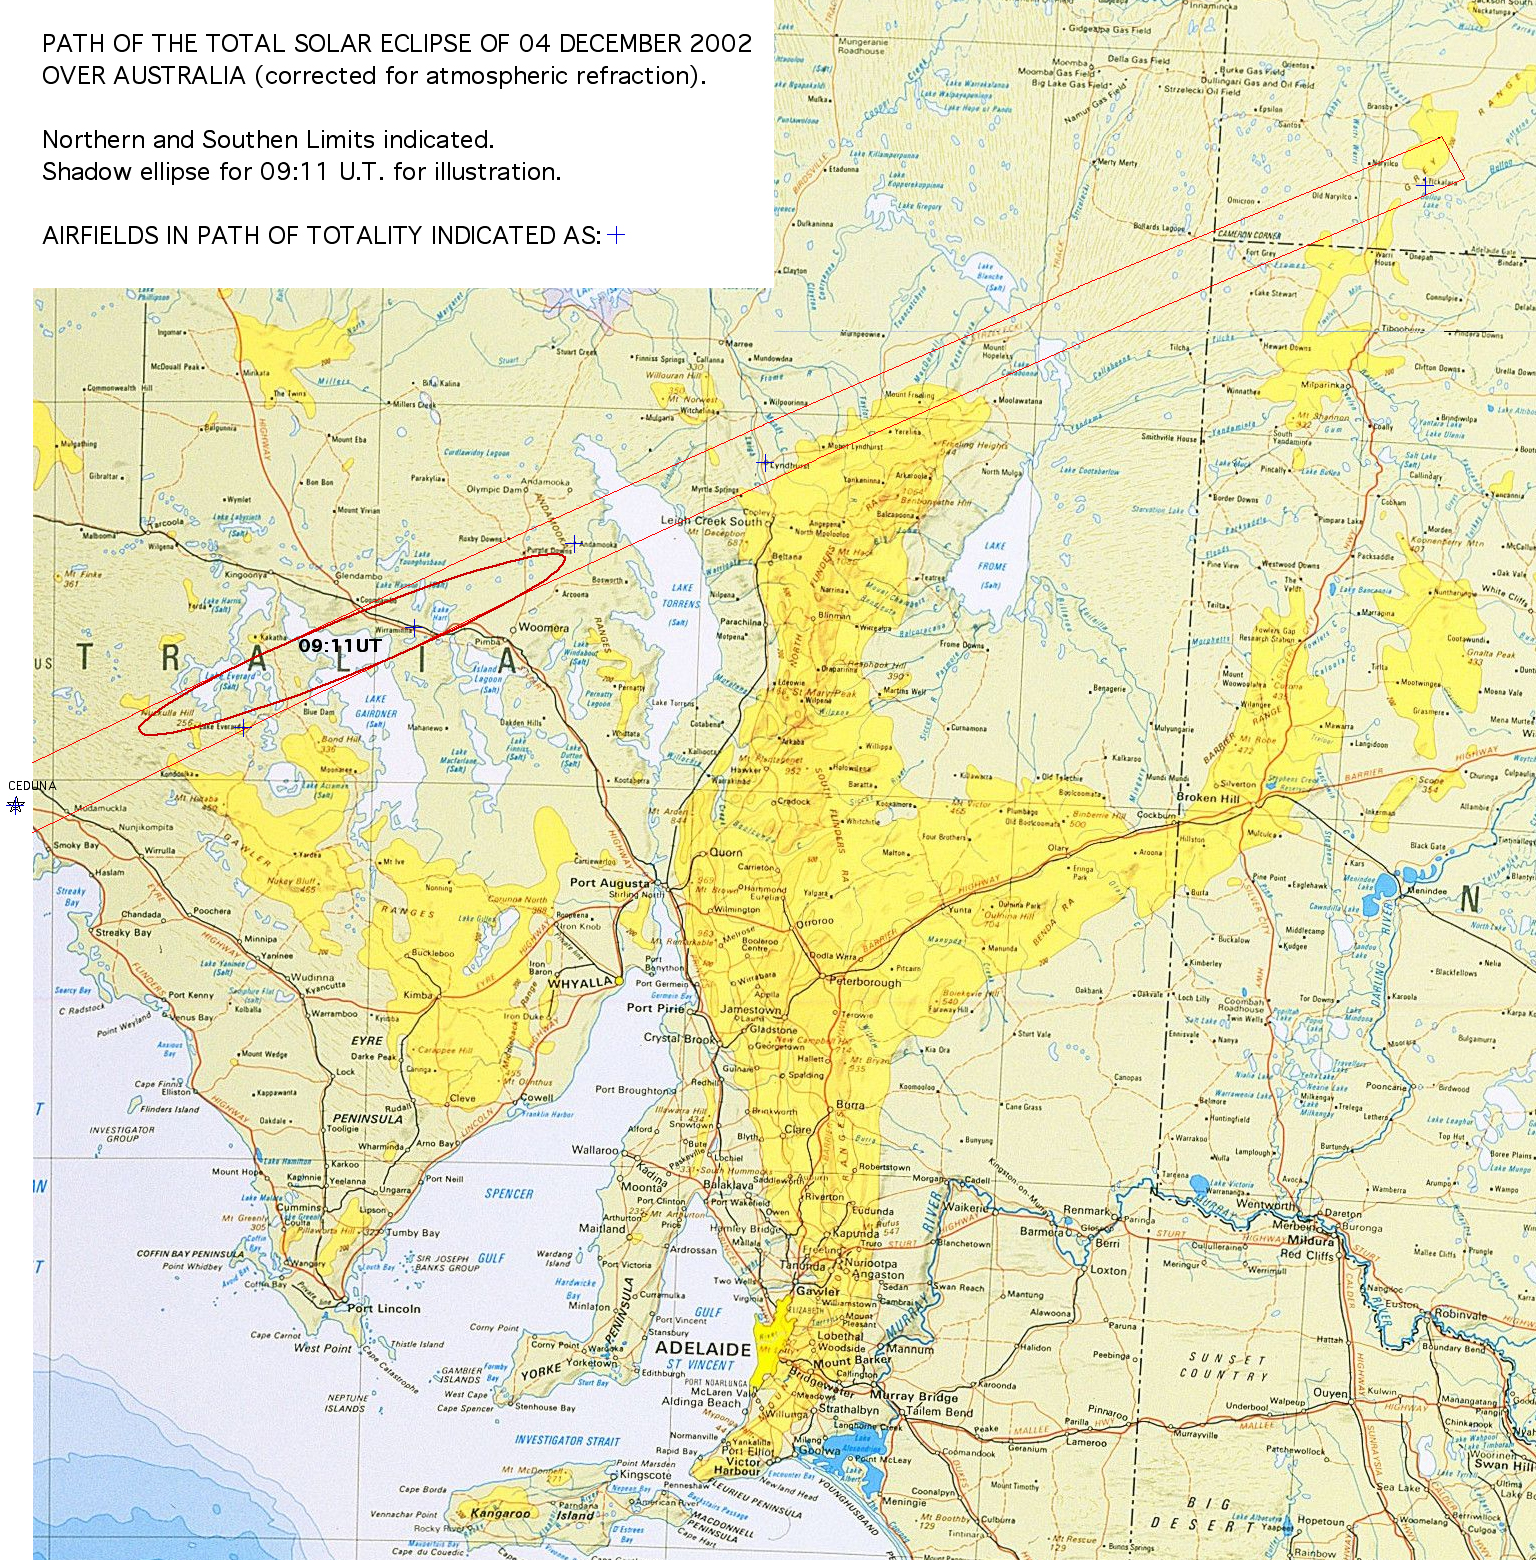 path of total solar eclipse over australia map adelaide australia mappery